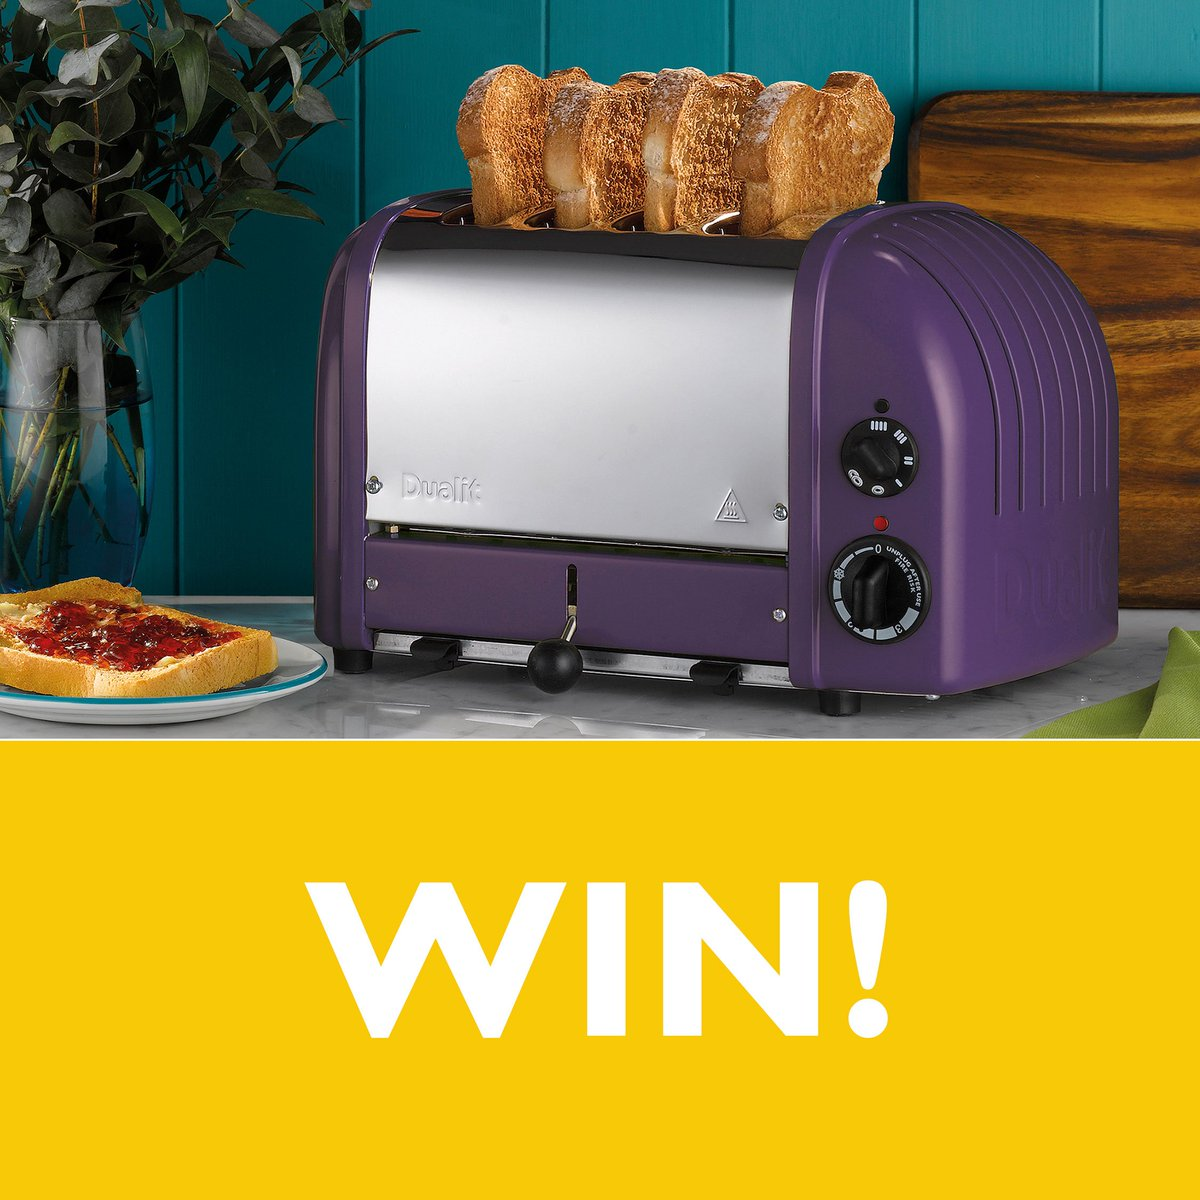 We&#39;re offering one lucky winner a 4 Slot Classic Toaster in Plum! Hand assembled in the UK, our iconic design is coveted by many. RT this tweet and make sure you are following us for your chance to win. #Competition closes midnight 26 April - T&amp;Cs here  http:// bit.ly/Dualit-Comp  &nbsp;  <br>http://pic.twitter.com/txDmCPqkV6